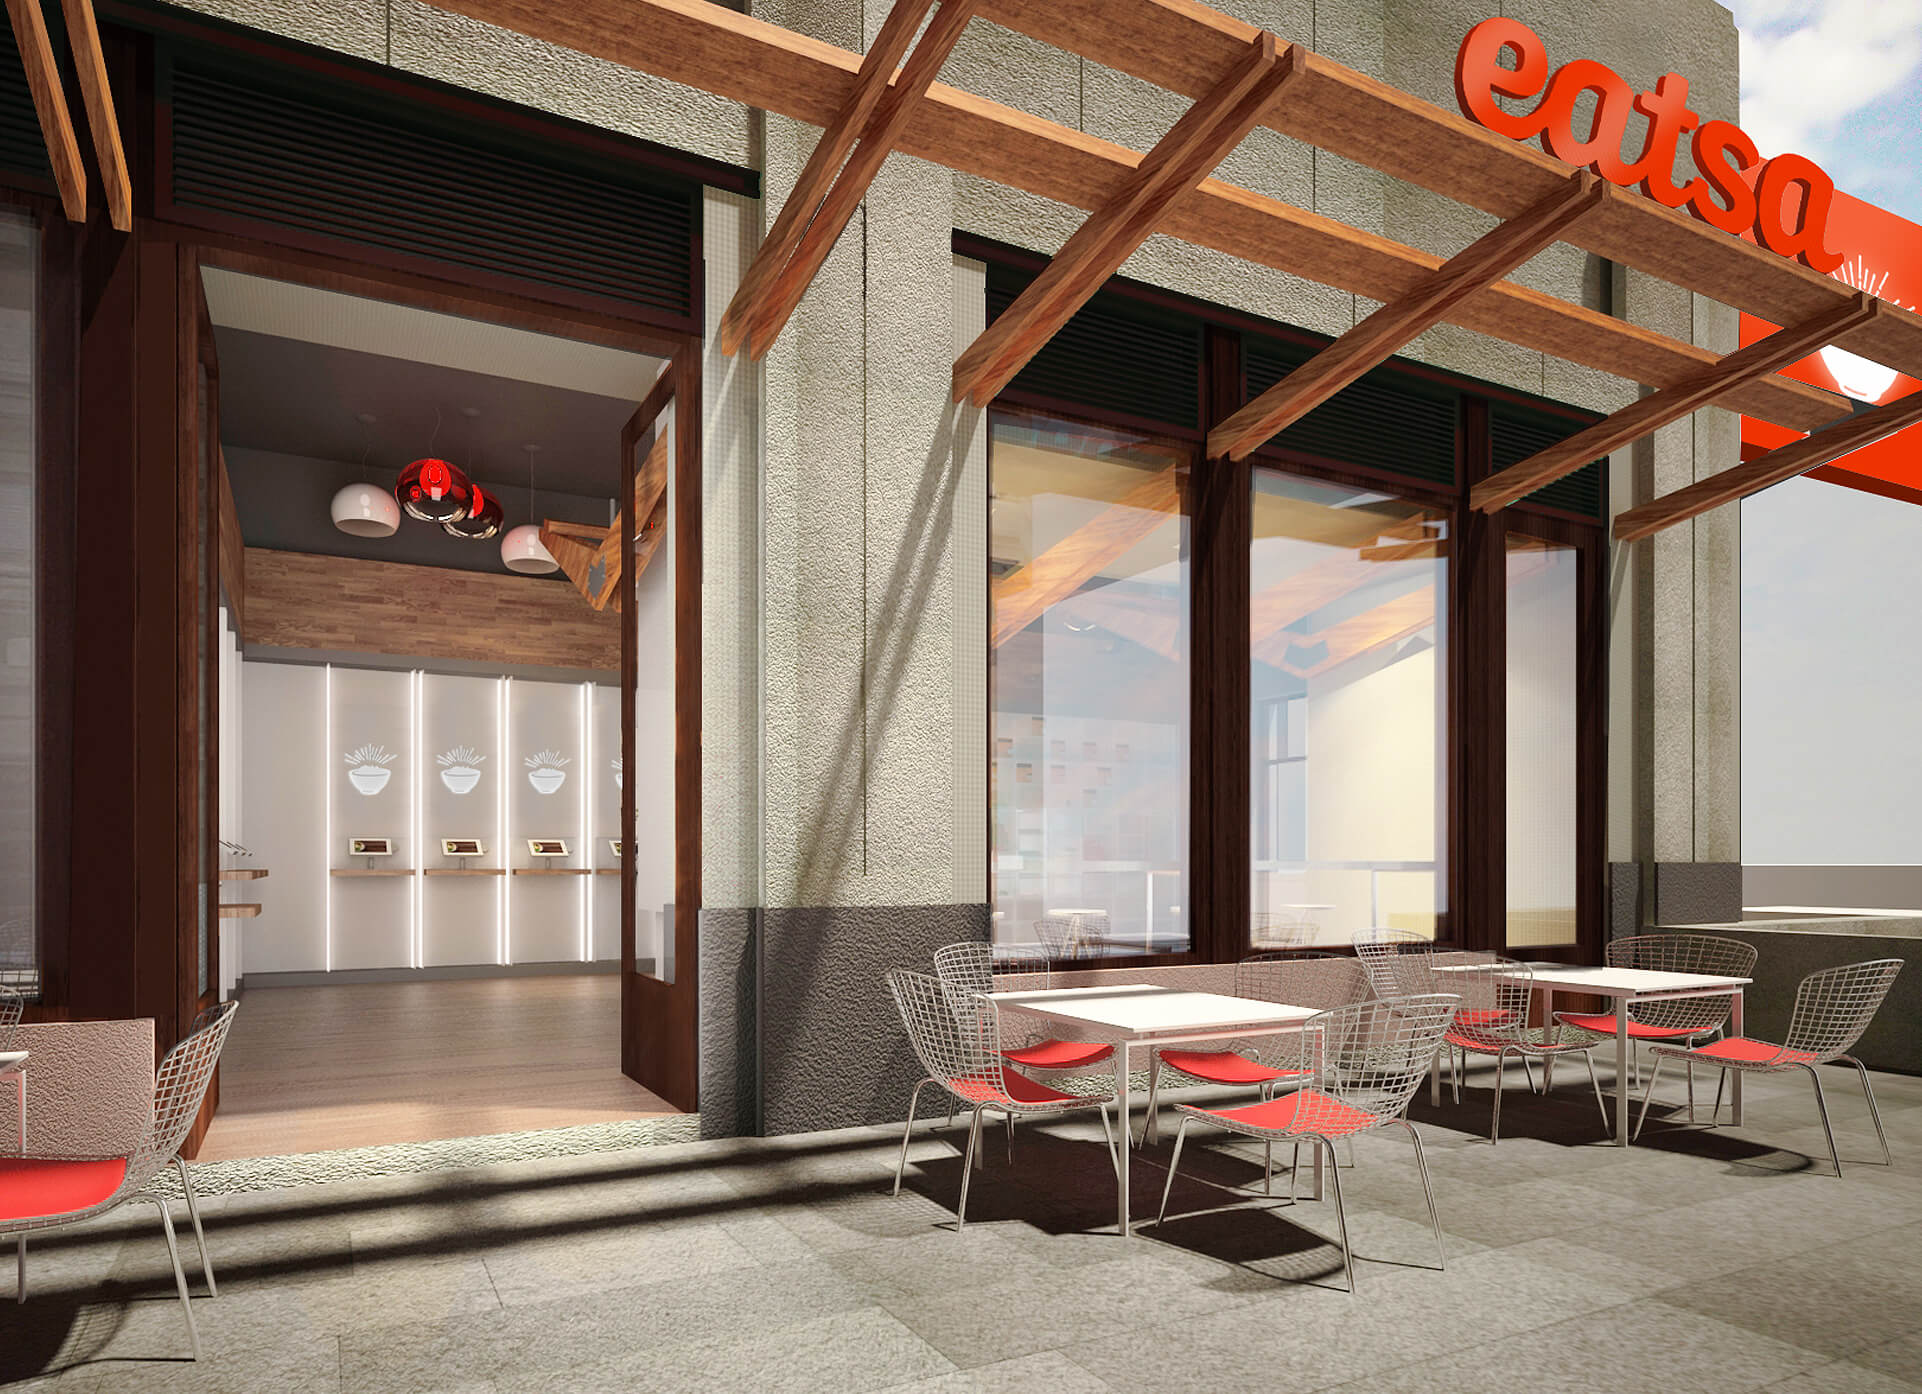 Introducing eatsa, The Financial District's Upcoming Quinoa Emporium